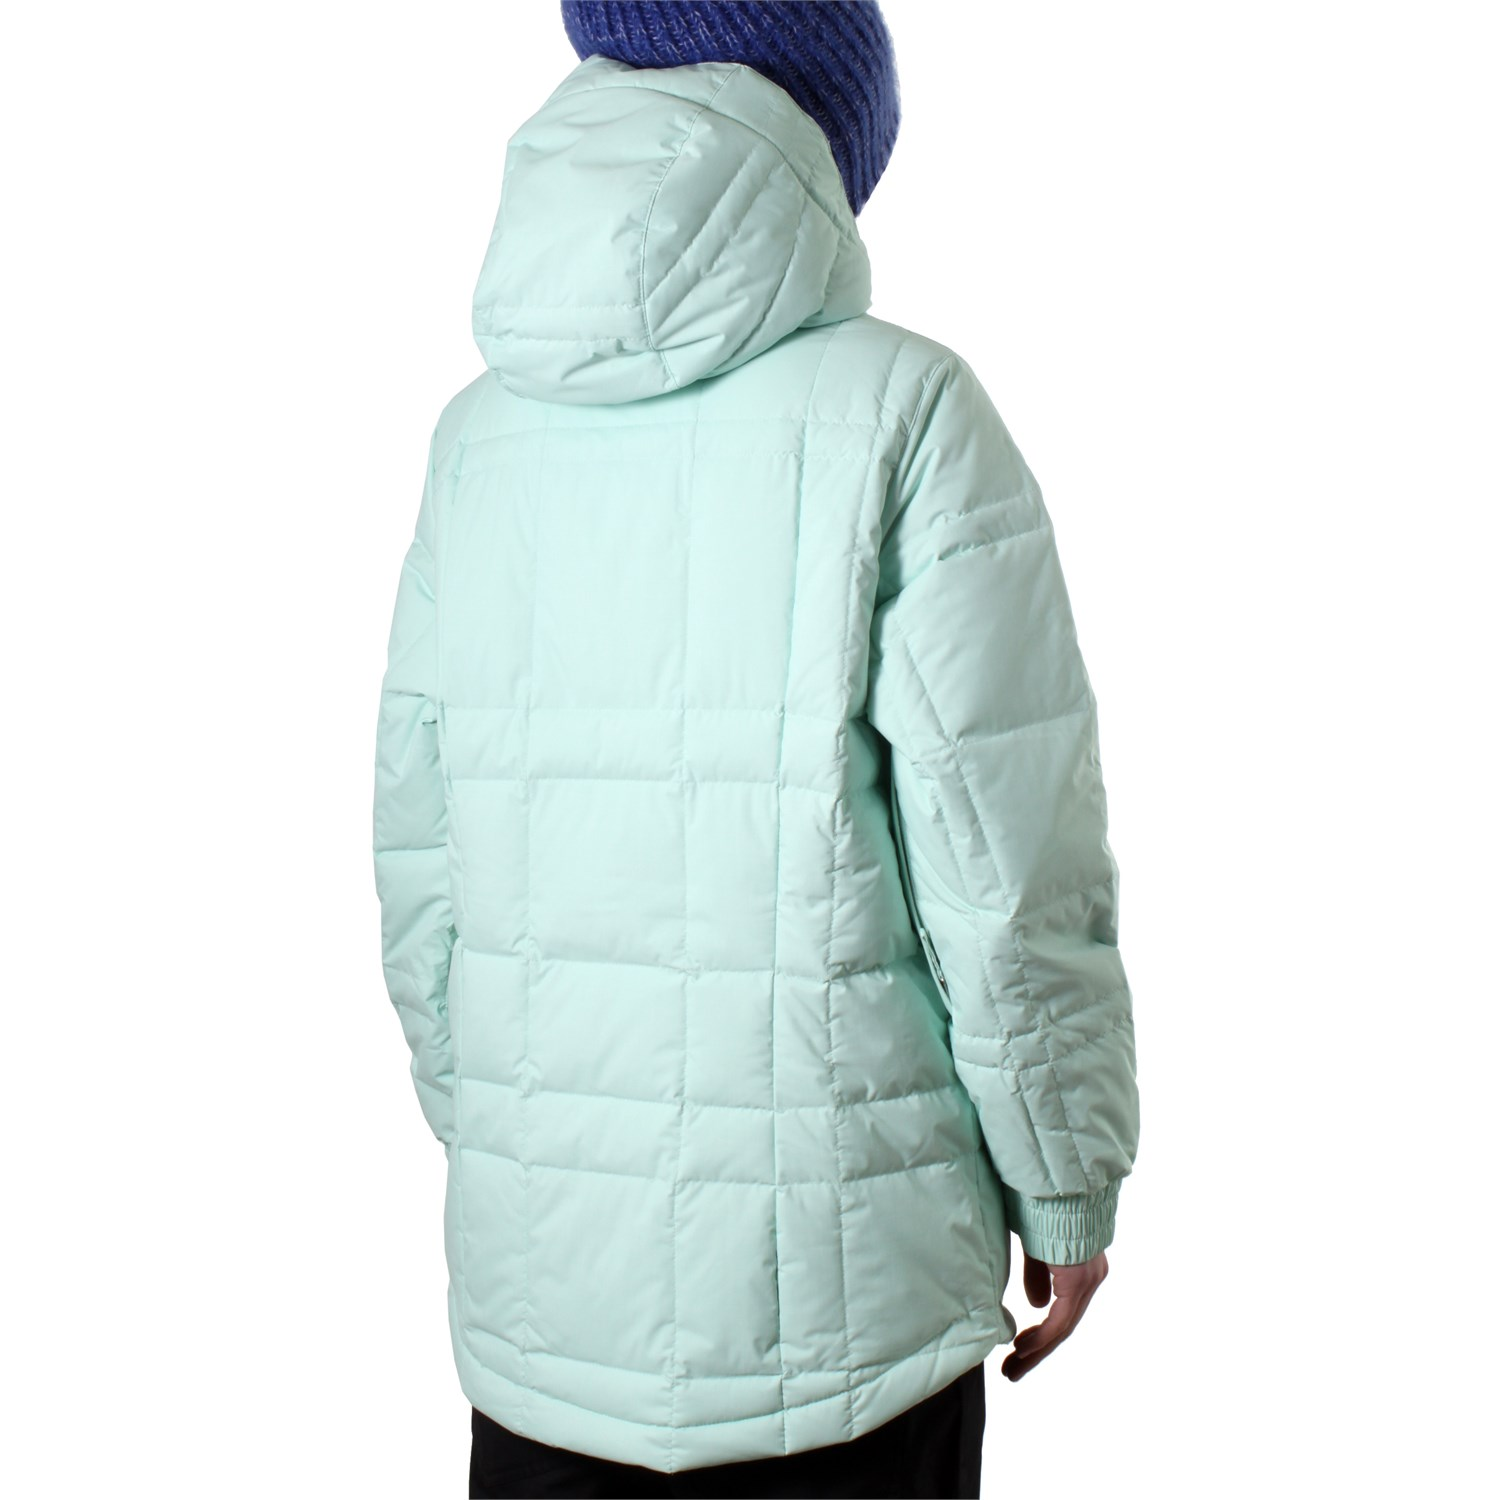 00a628f66a78 Nike 6.0 Vashi Down Jacket - Women s